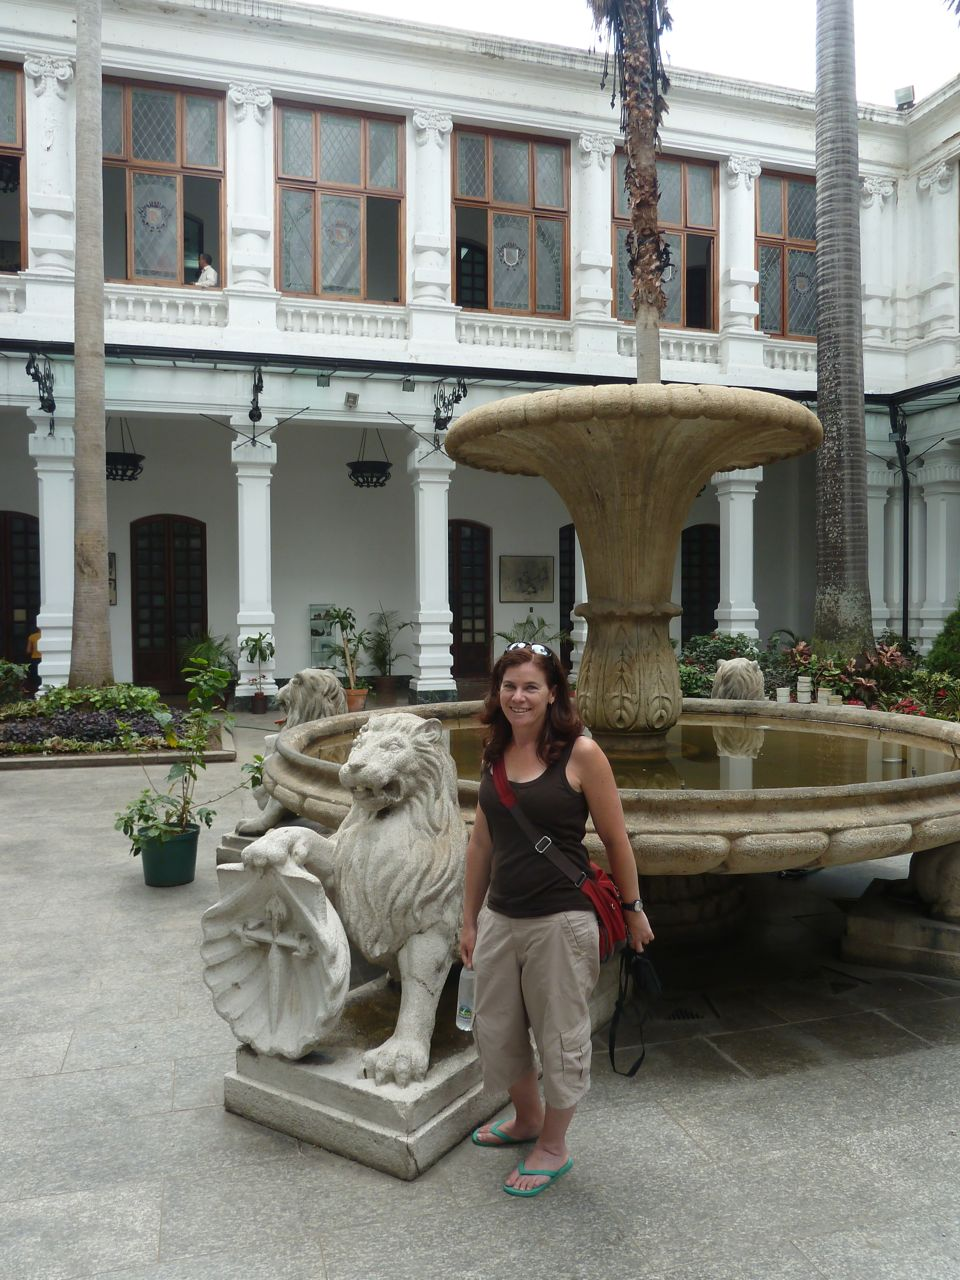 The Courtyard of Cuidad Bolivar